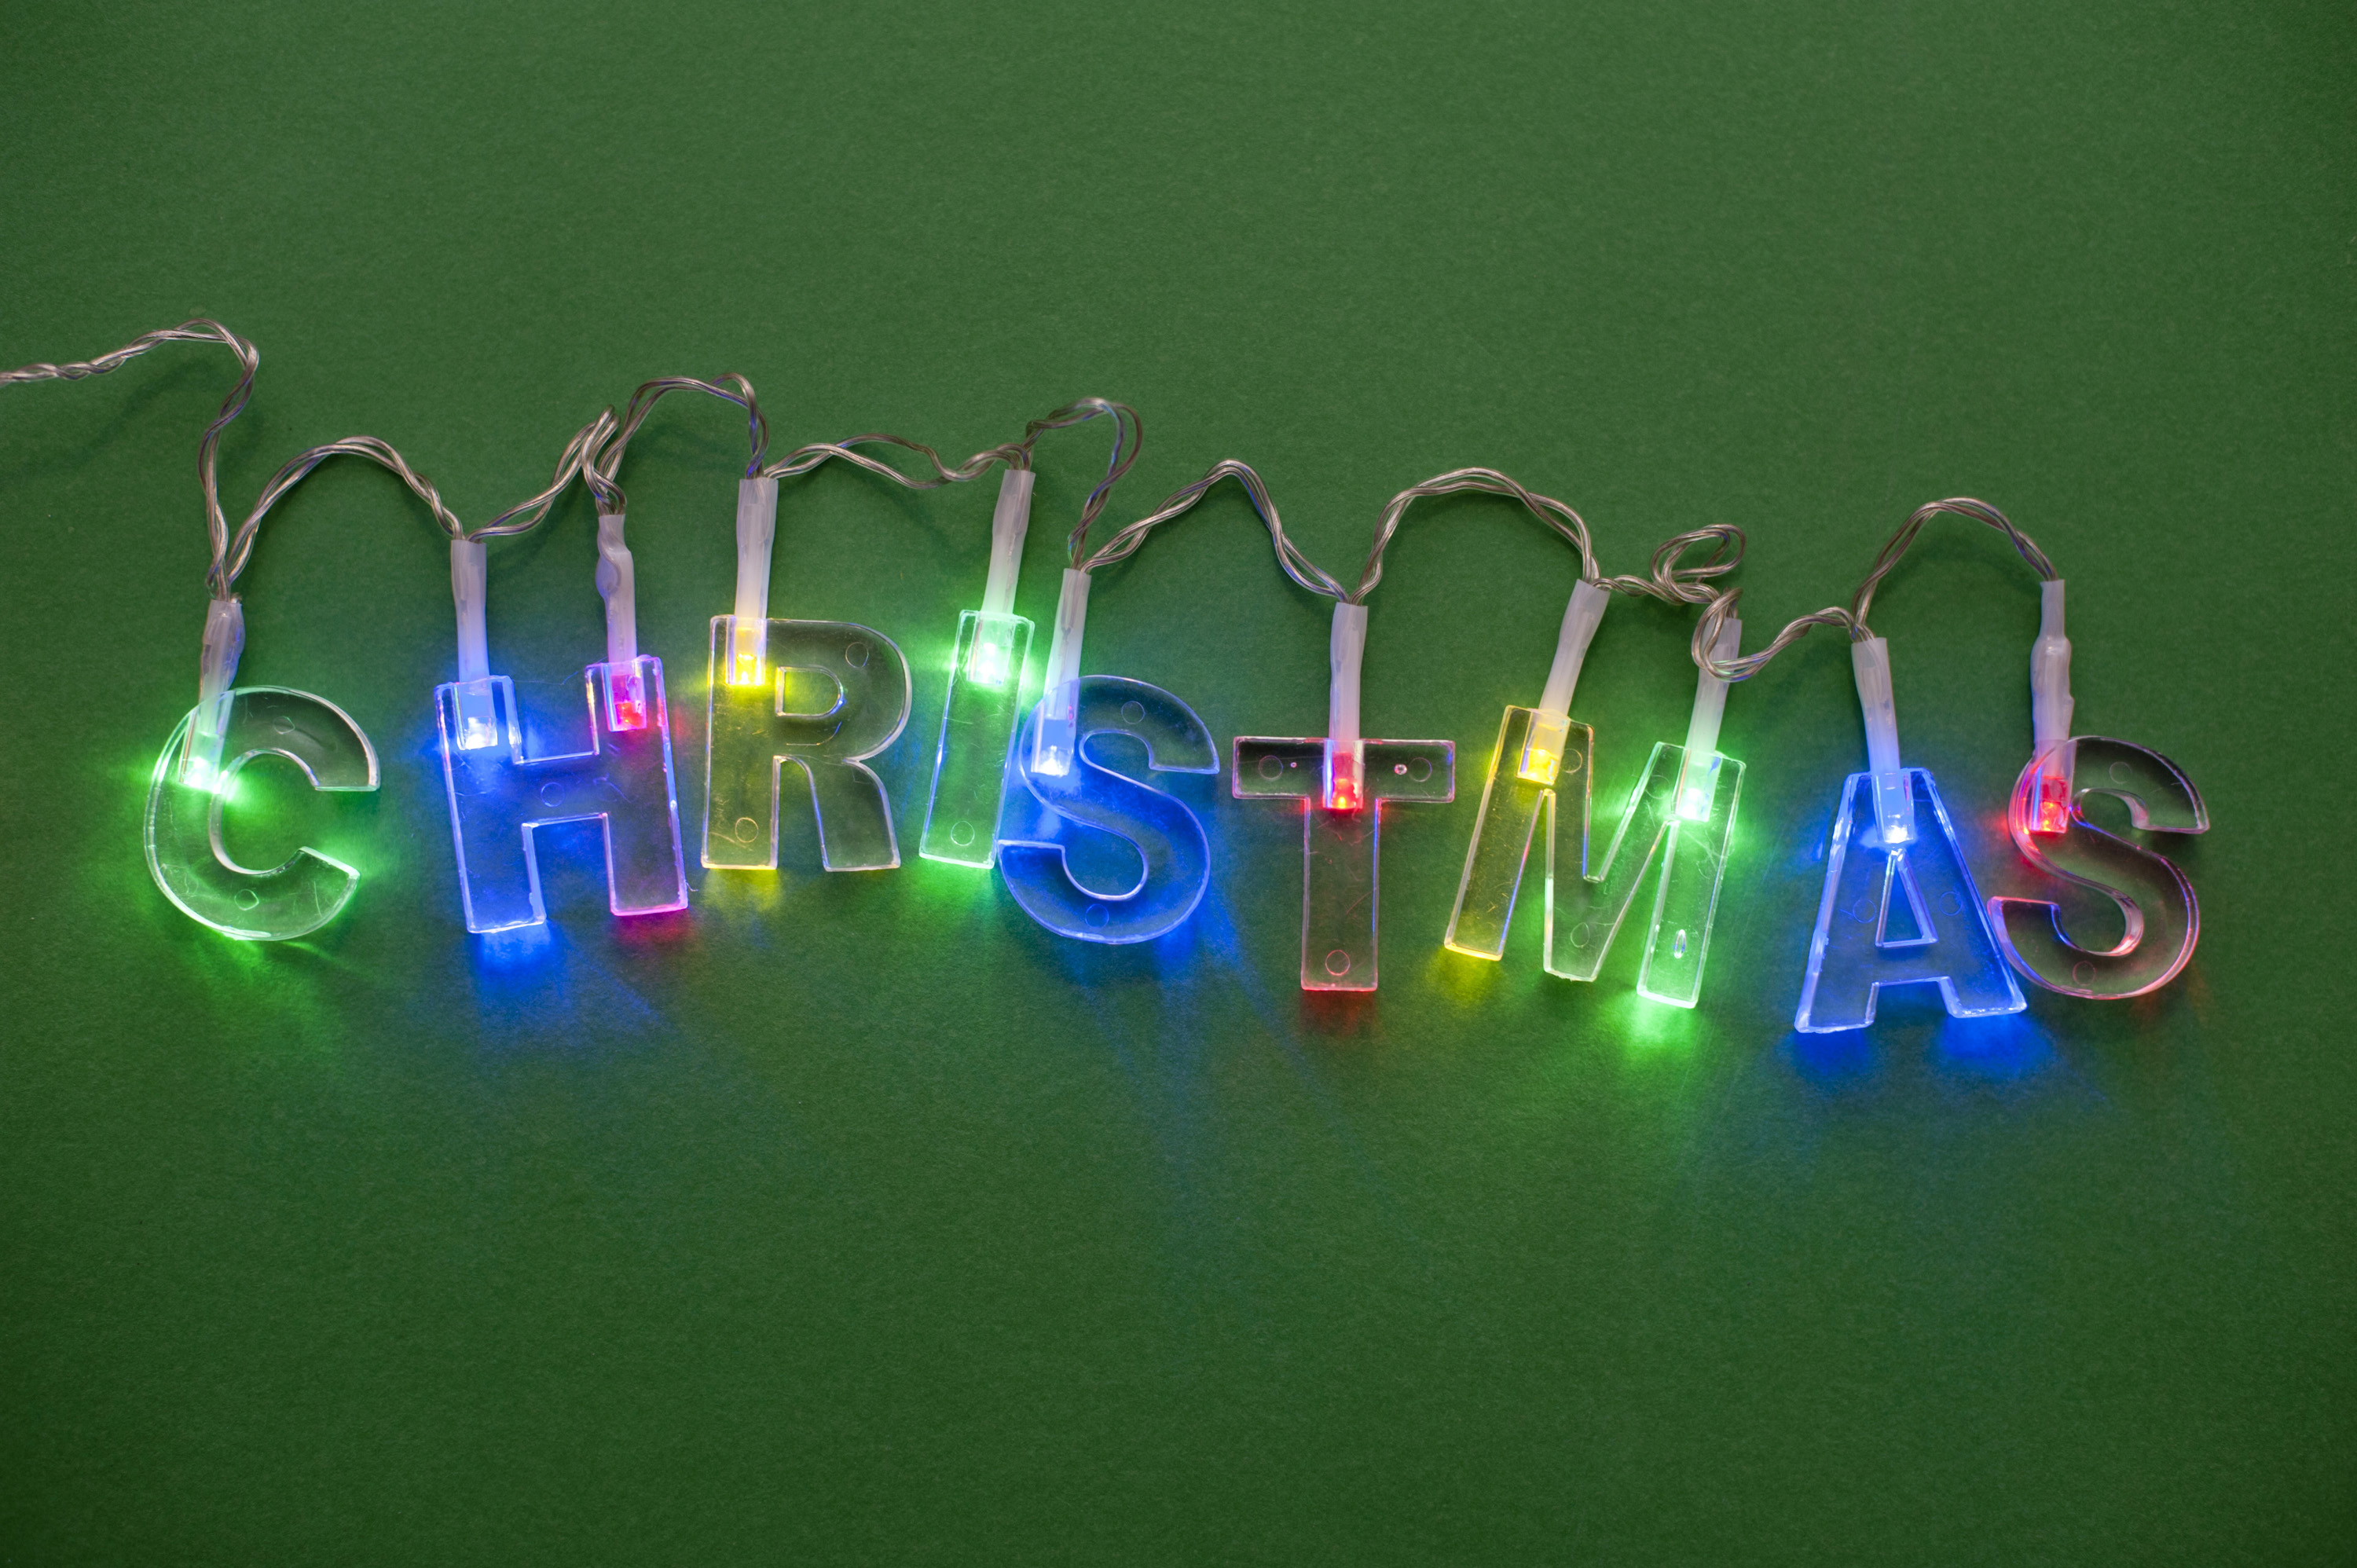 Christmas garland spelling out christmas in coloured light on green background